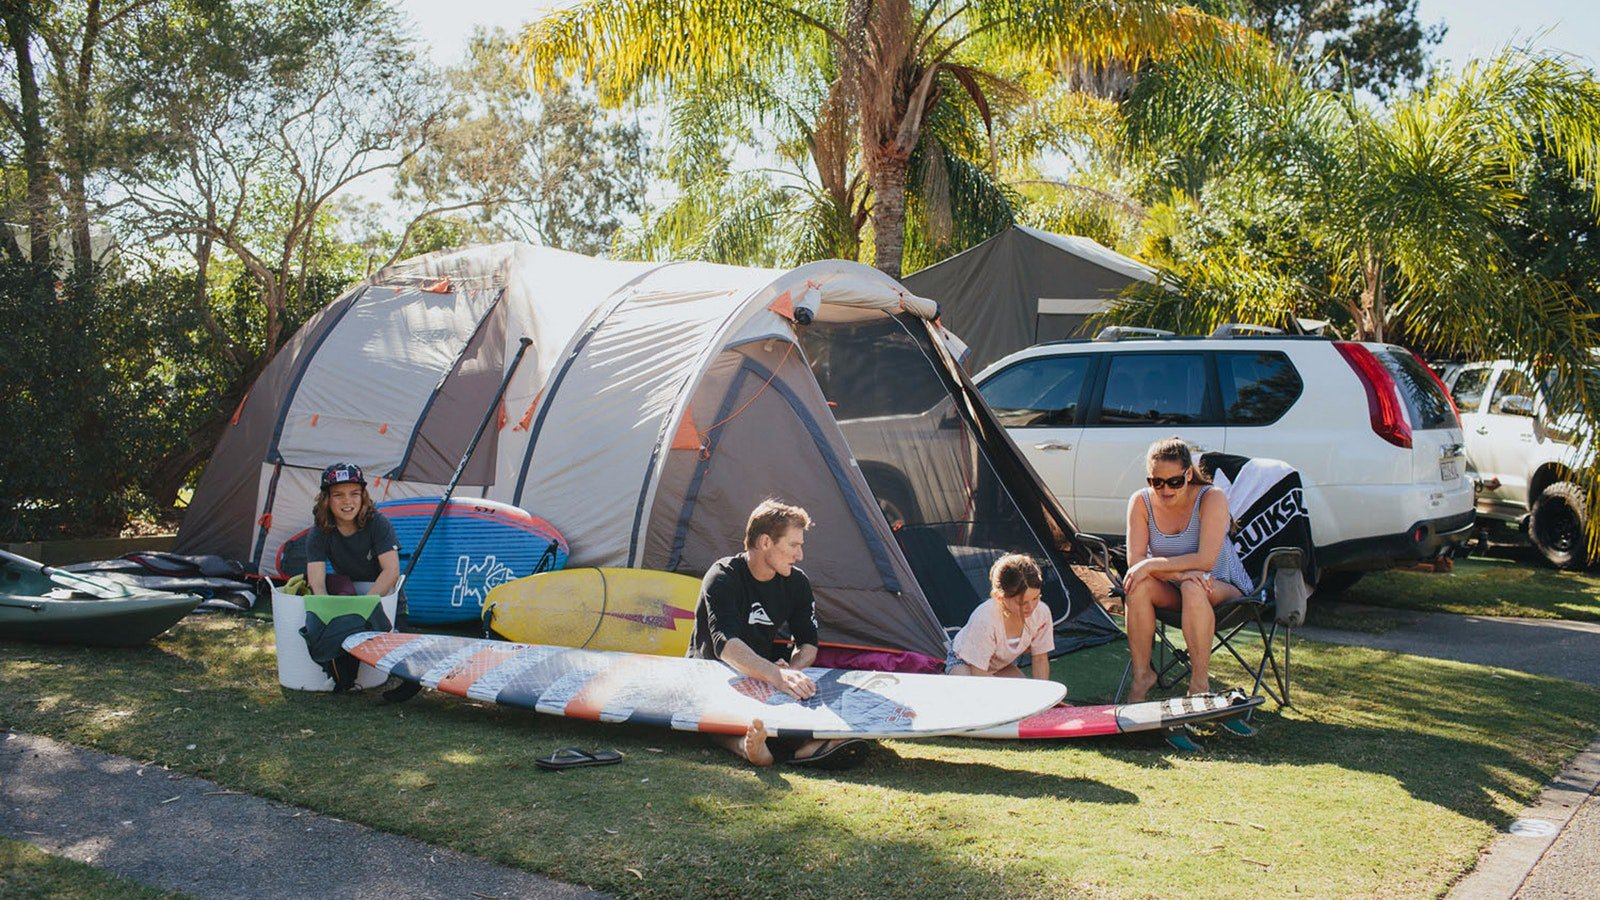 Camping at NRMA Treasure Island Holiday Park